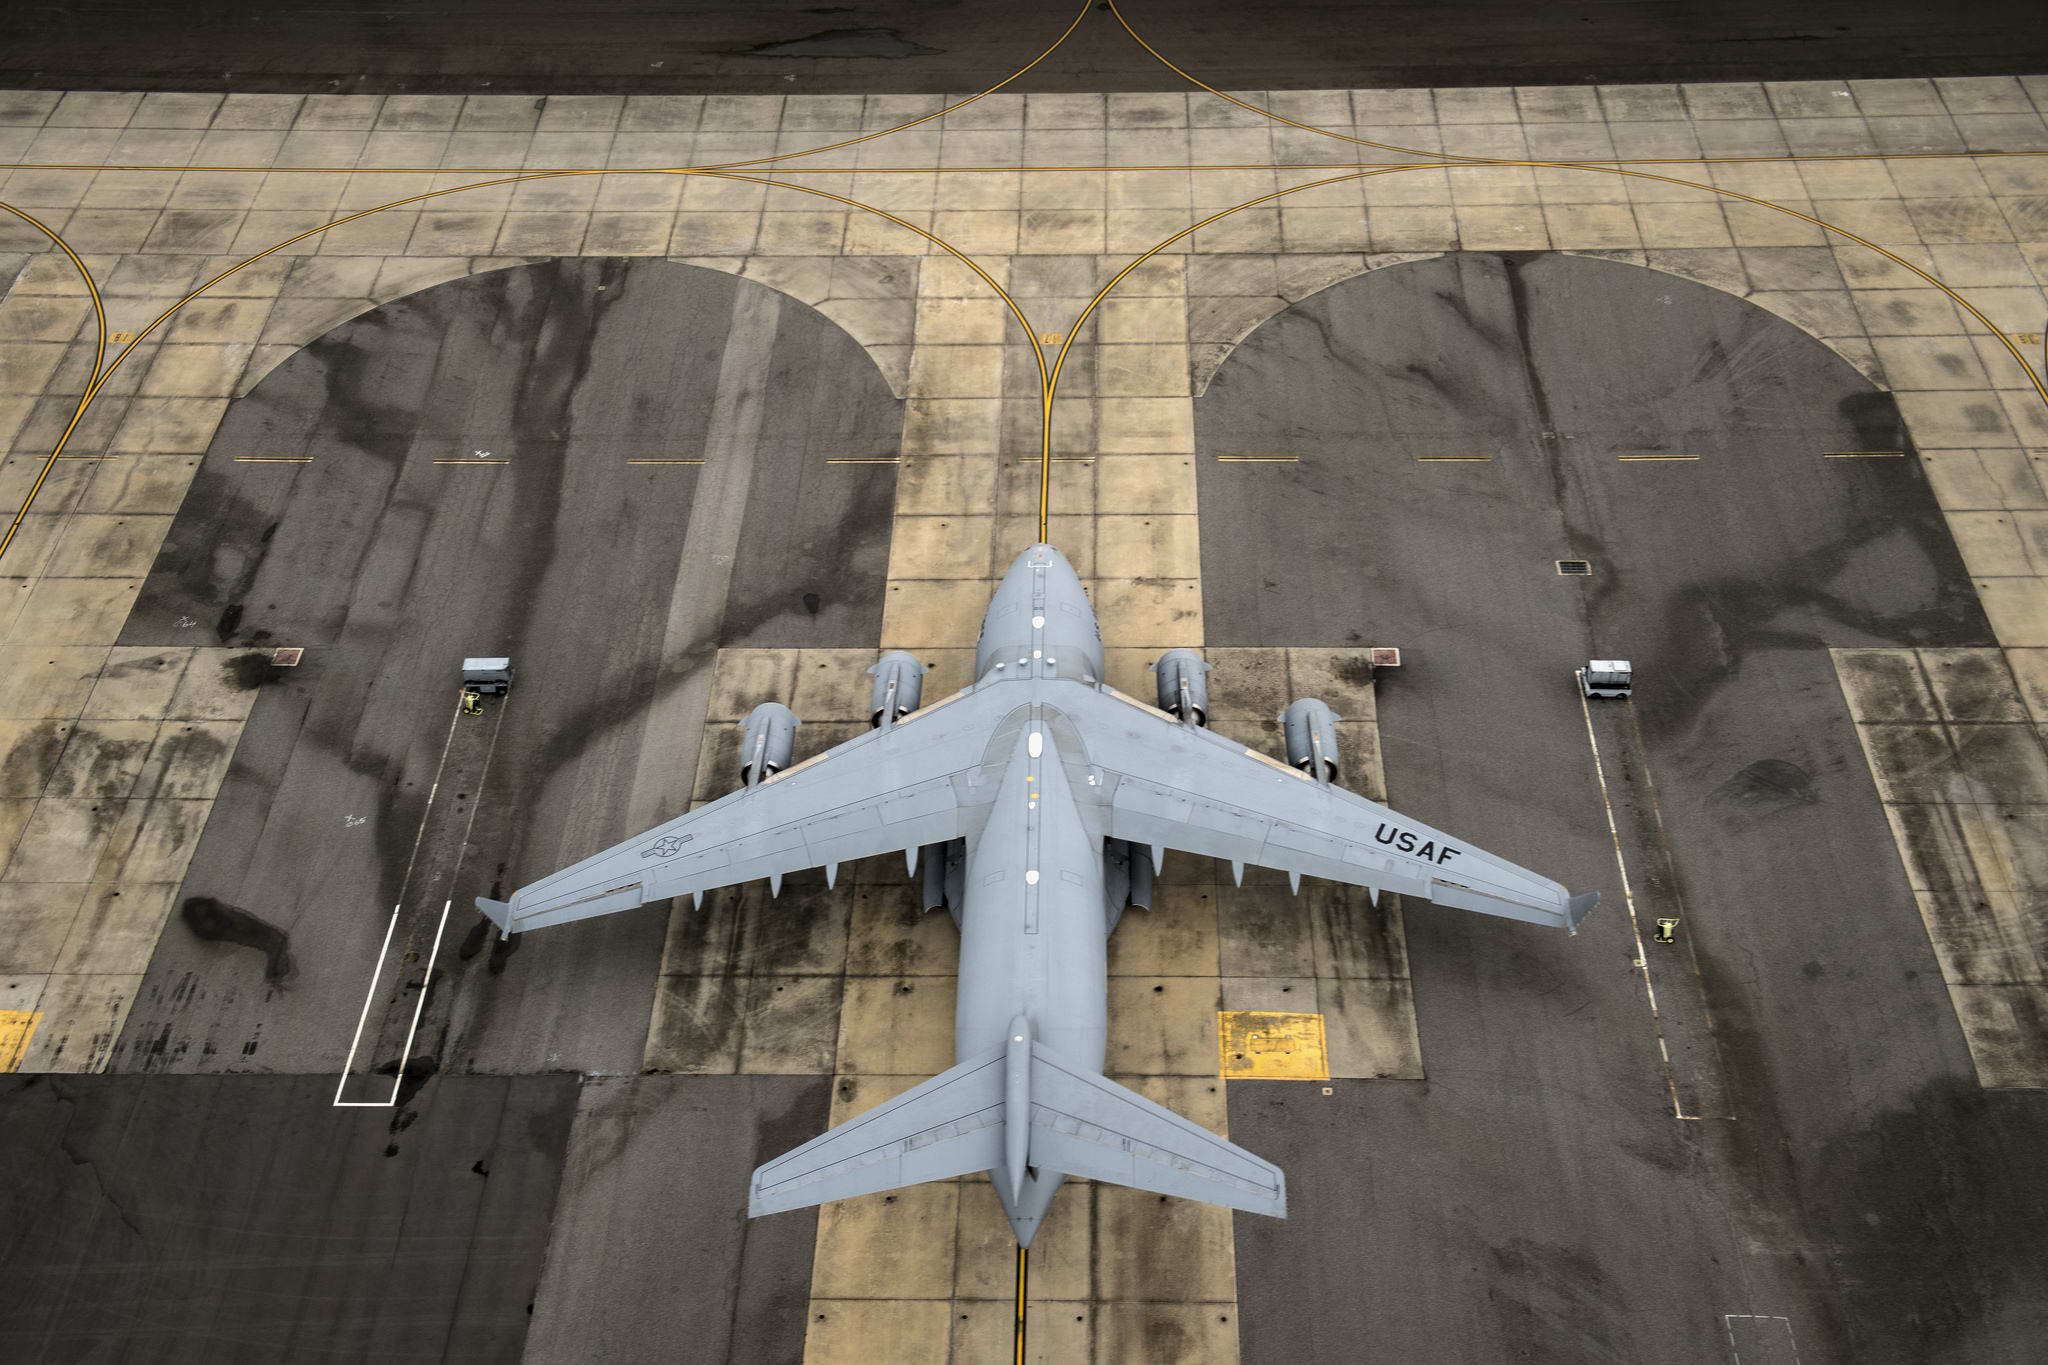 A U.S. Air Force C-17 Globemaster III sits on the flightline, Sept. 16, 2018, at Joint Base Charleston, S.C.. Following Hurricane Florence, Air Force search and rescue assets staged at Charleston in order to be ready to provide rescue capabilities if the need were to arise. (Staff Sgt. Ryan Callaghan/Air Force)